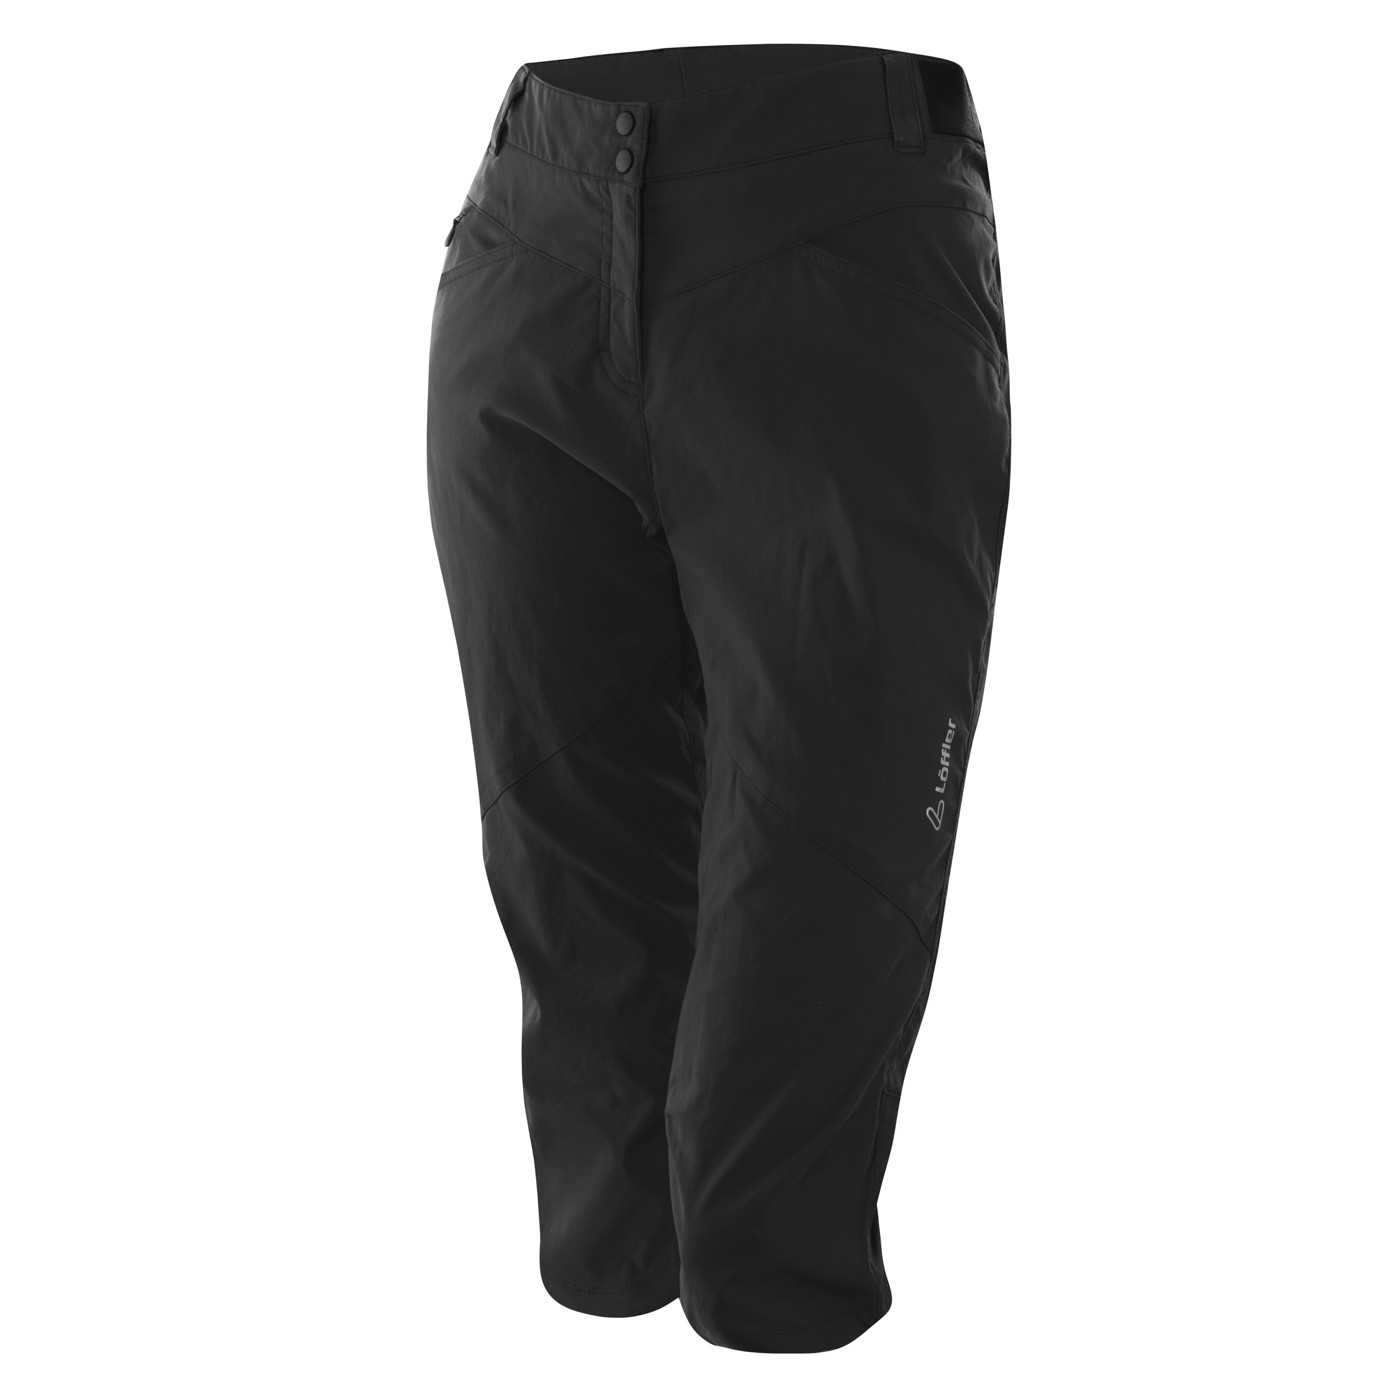 LÖFFLER W 3/4 BIKE PANTS CSL - Damen